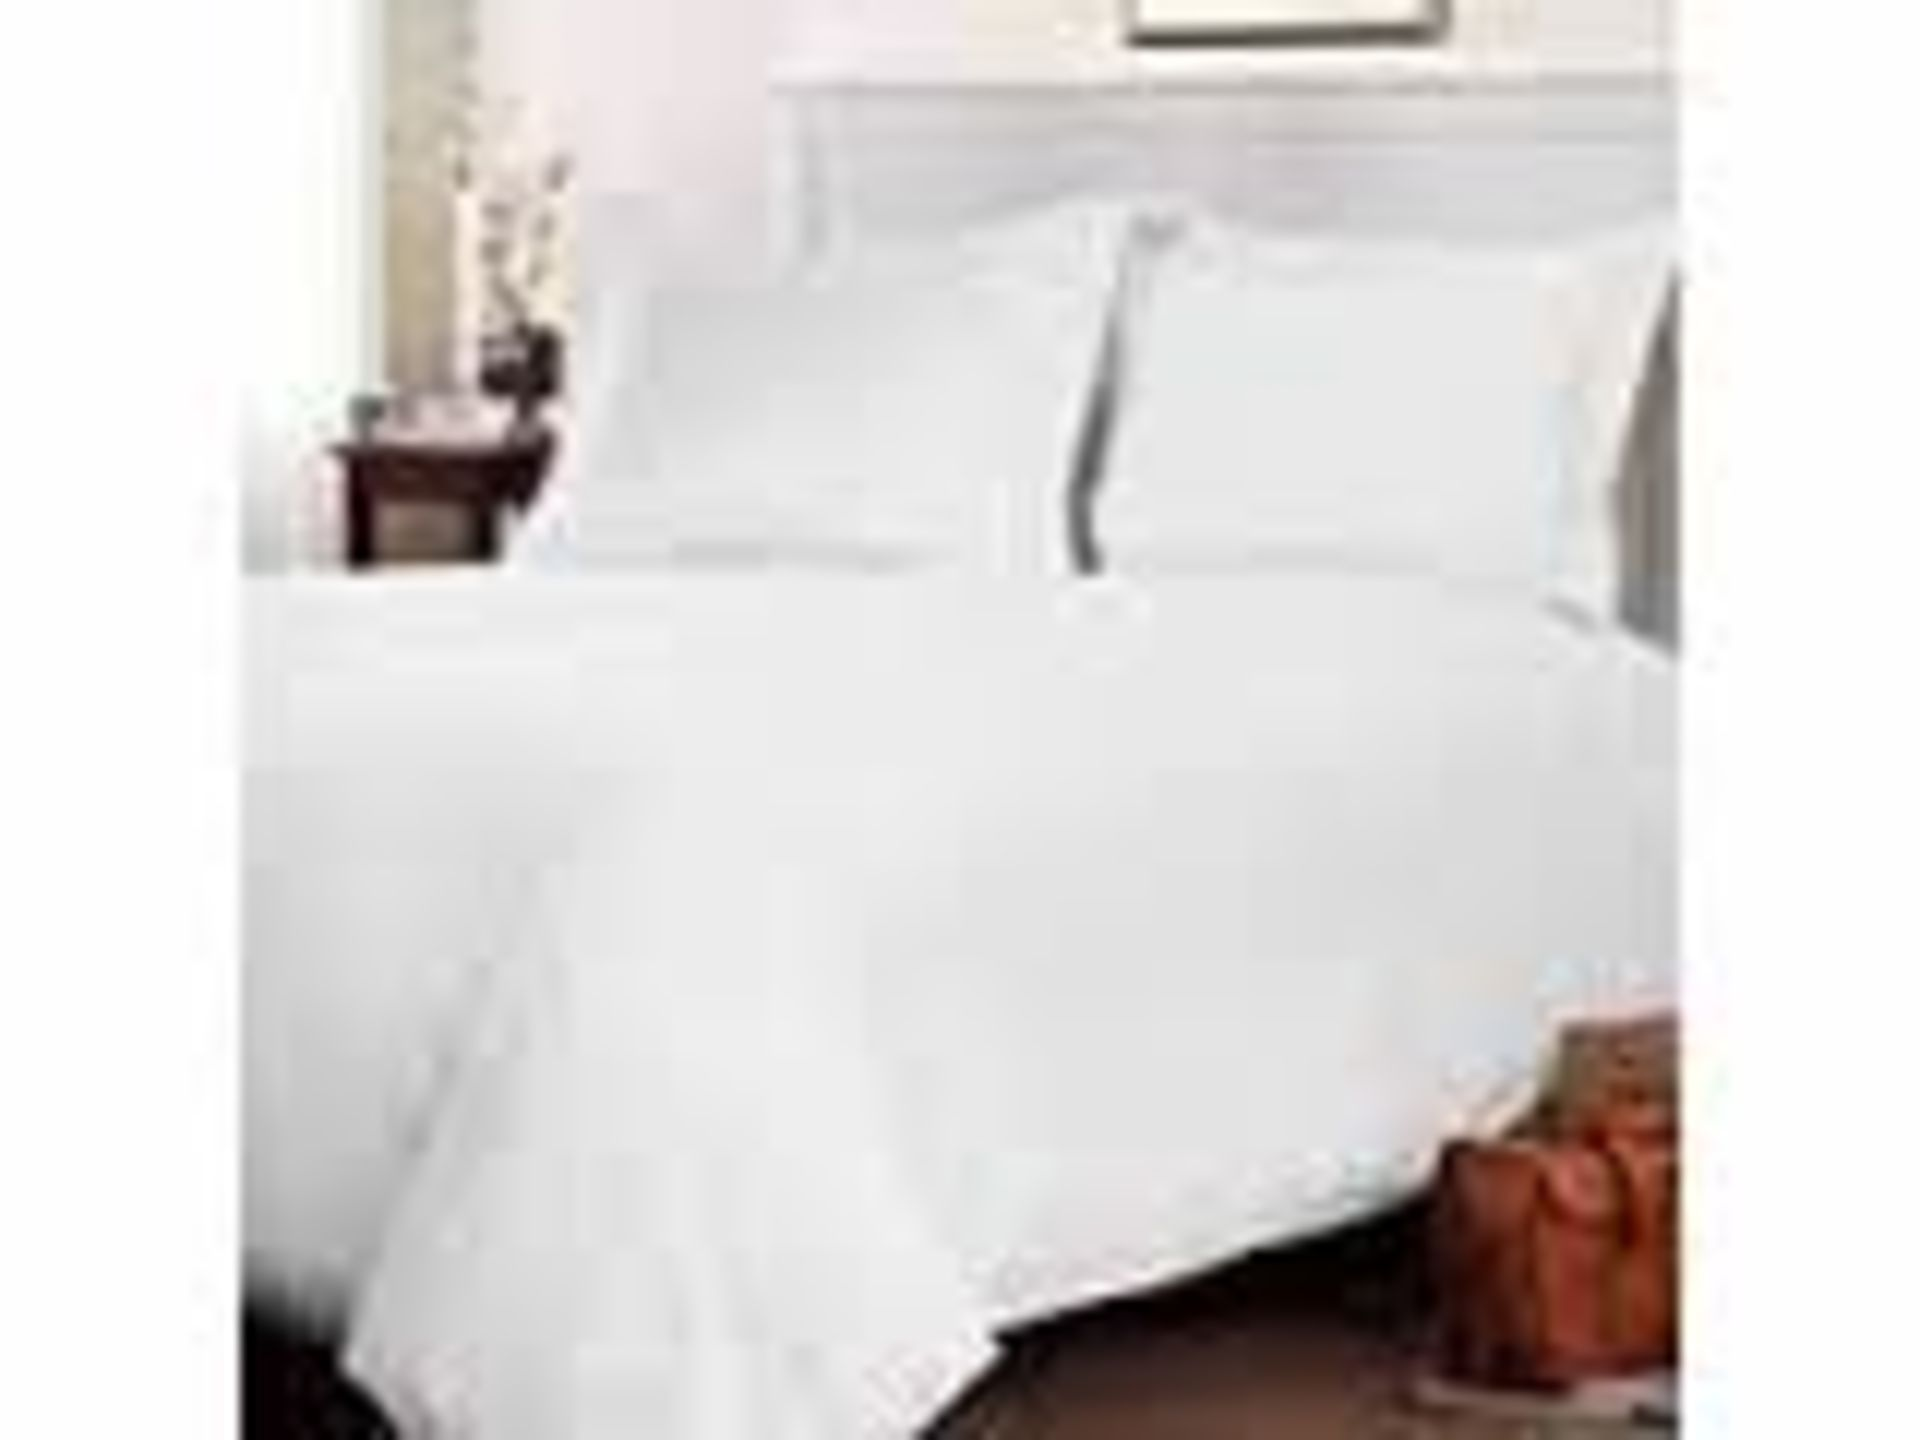 Lot 50274 - V Brand New Luxury Double Bed Plain Dye Fitted Sheets